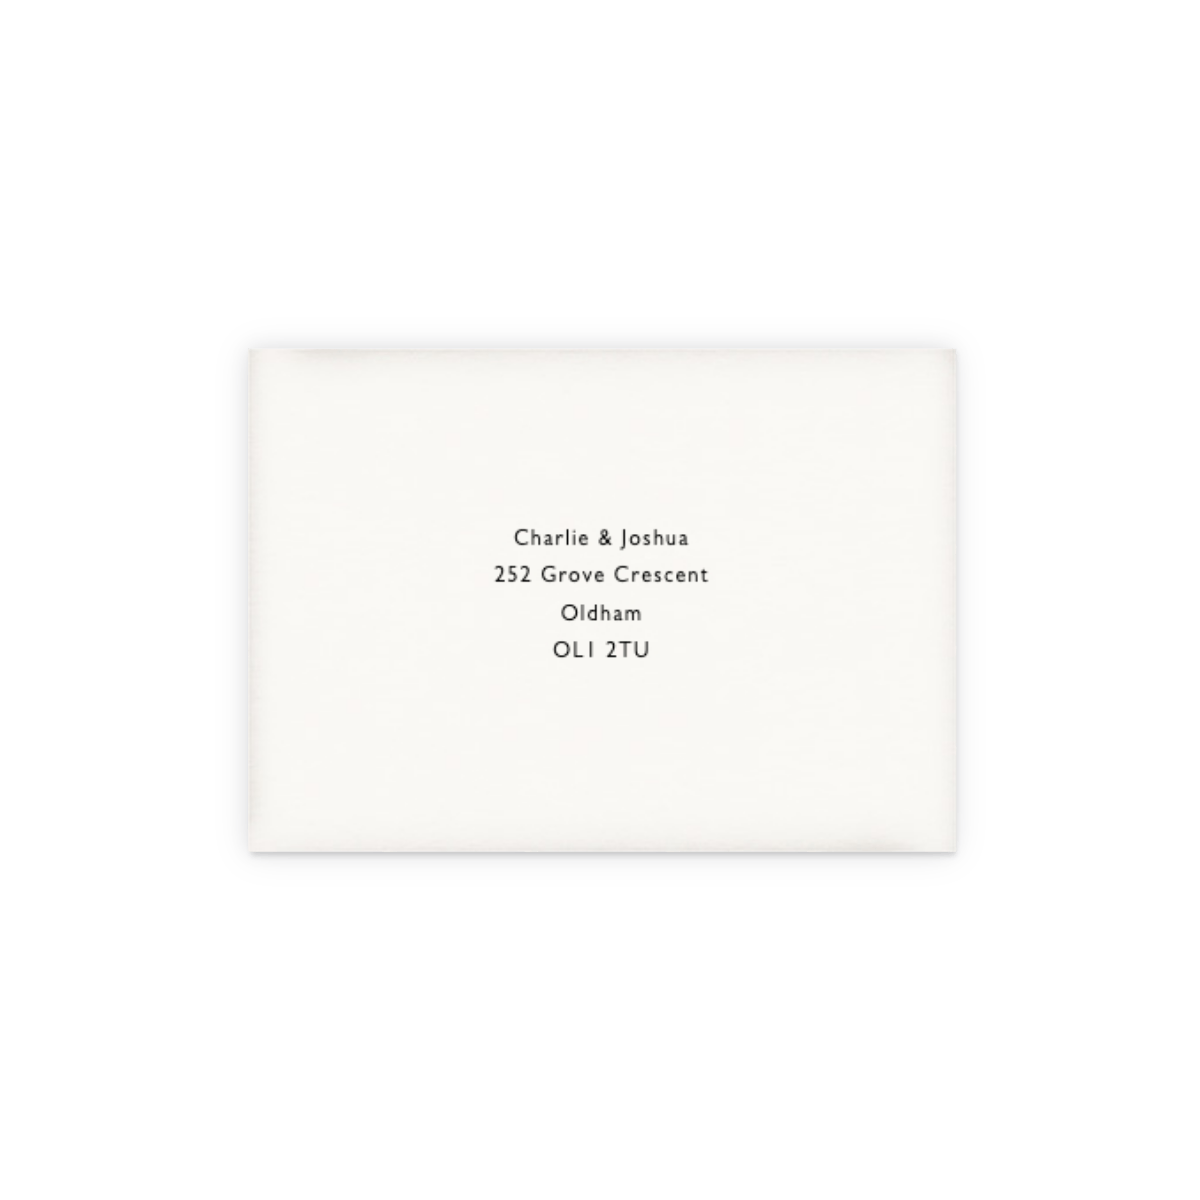 Https%3a%2f%2fwww.papier.com%2fproduct image%2f22719%2f12%2fmodern thin border 5704 rsvp envelope 1580464770.png?ixlib=rb 1.1